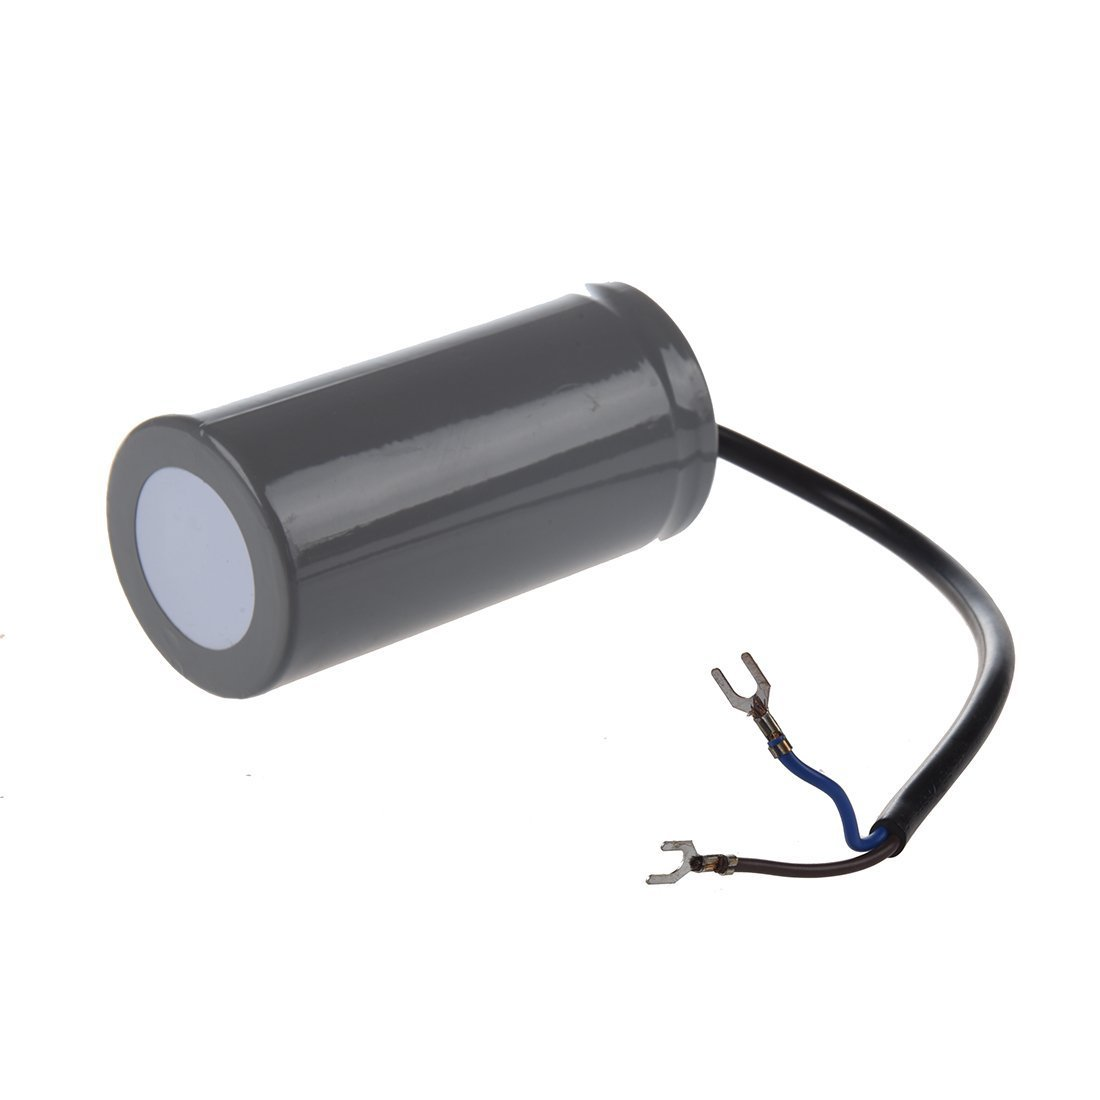 SODIAL(R) CD60 AC 250V 150uF Wired Single Phase Motor Start Capacitor Gray: Amazon.com: Industrial & Scientific